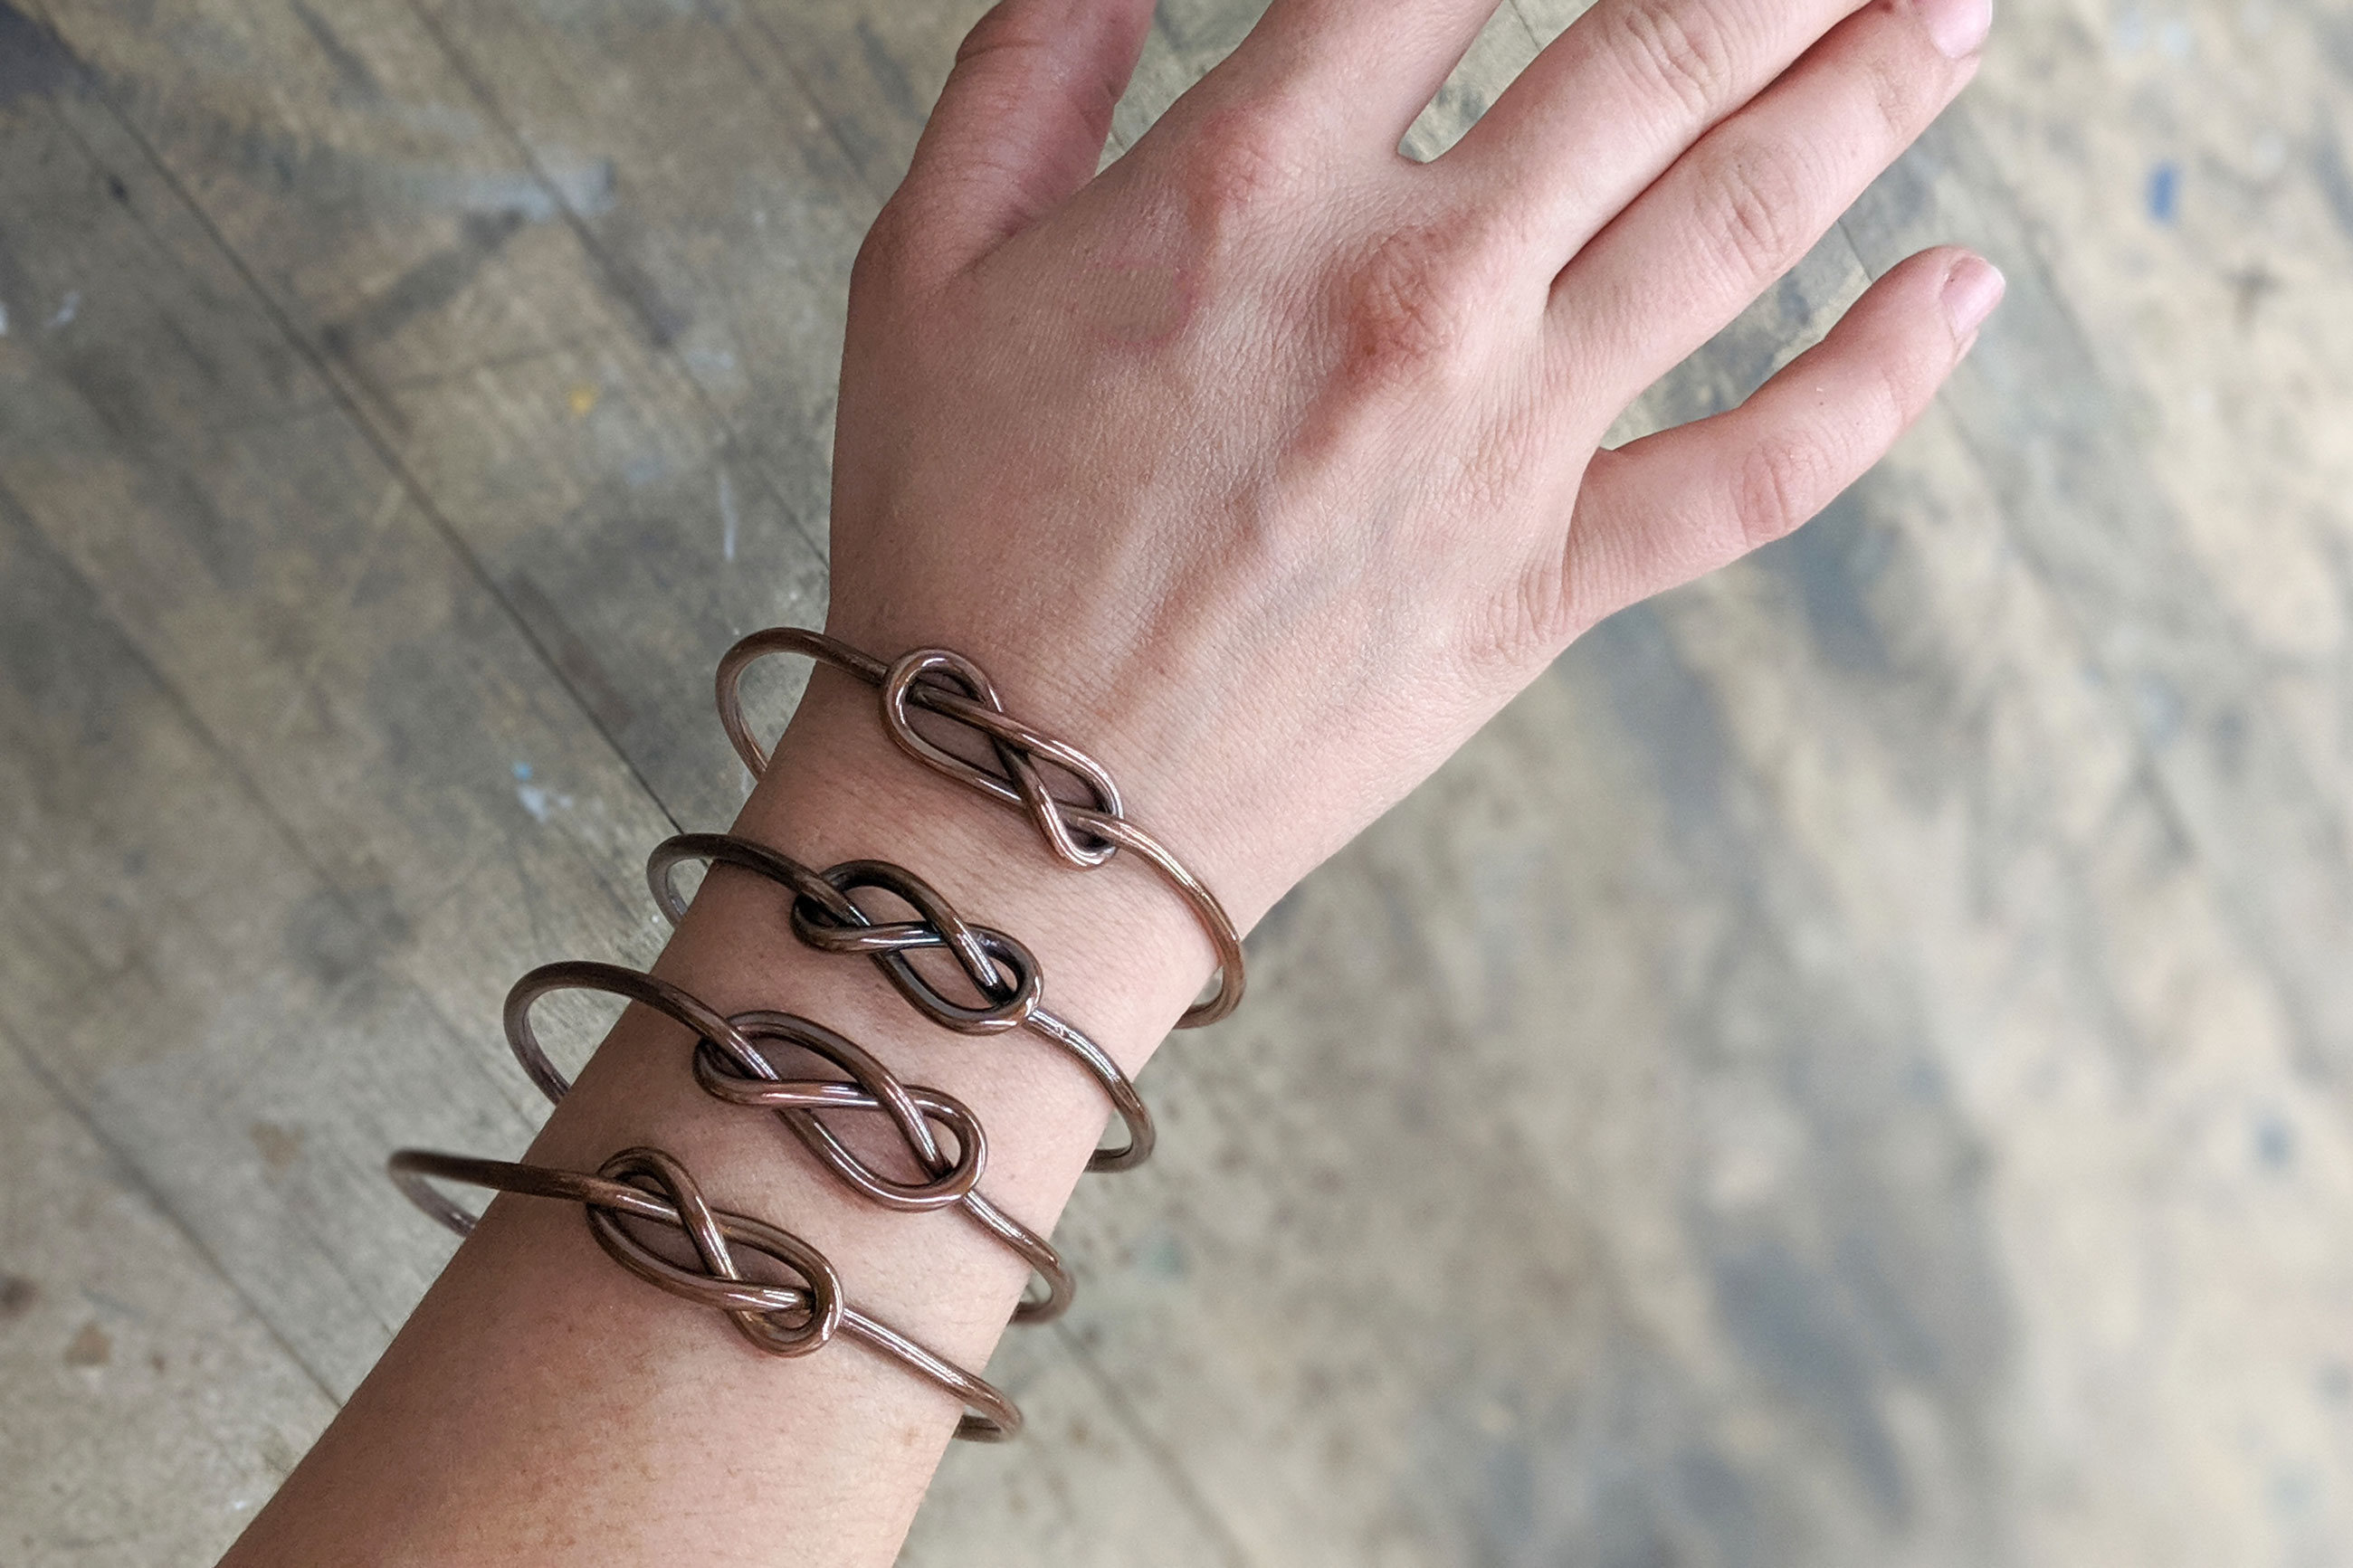 Jacqueline Perry Designs climbing jewelry